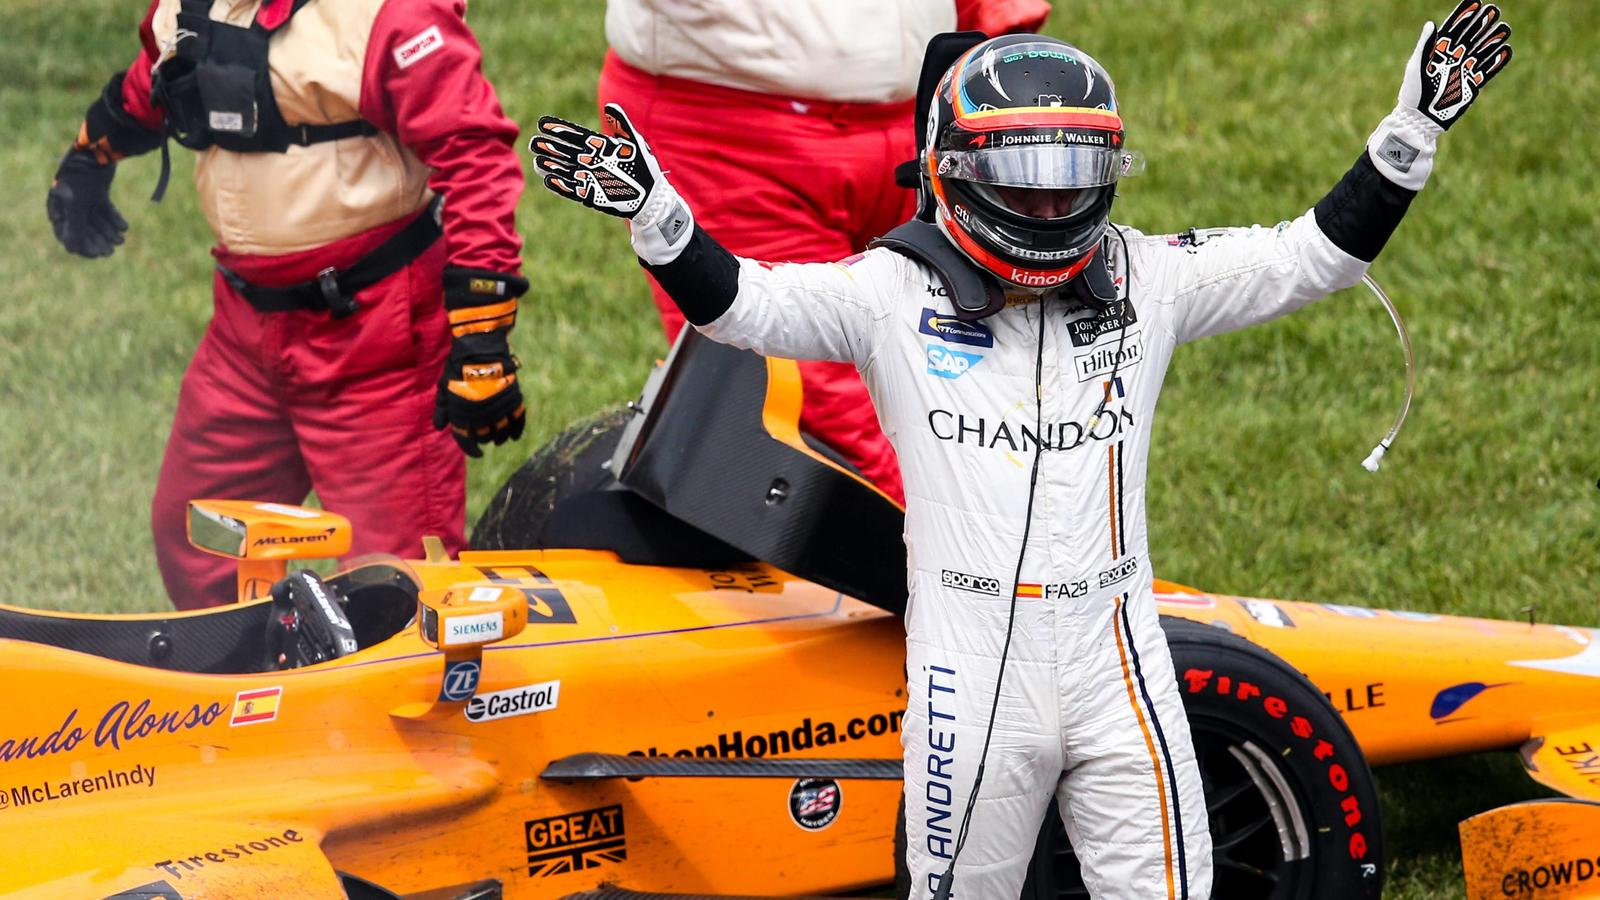 Fernando Alonso acknowledges the turn one crowd after his engine failed in the 2017 Indianapolis 500, at the Indianapolis Motor Speedway on May 28, 2017 in Indianapolis, Indiana. PUBLICATIONxINxGERxSUIxAUTxHUNxONLY IND2017052833 MIKExGENTRYFernando A